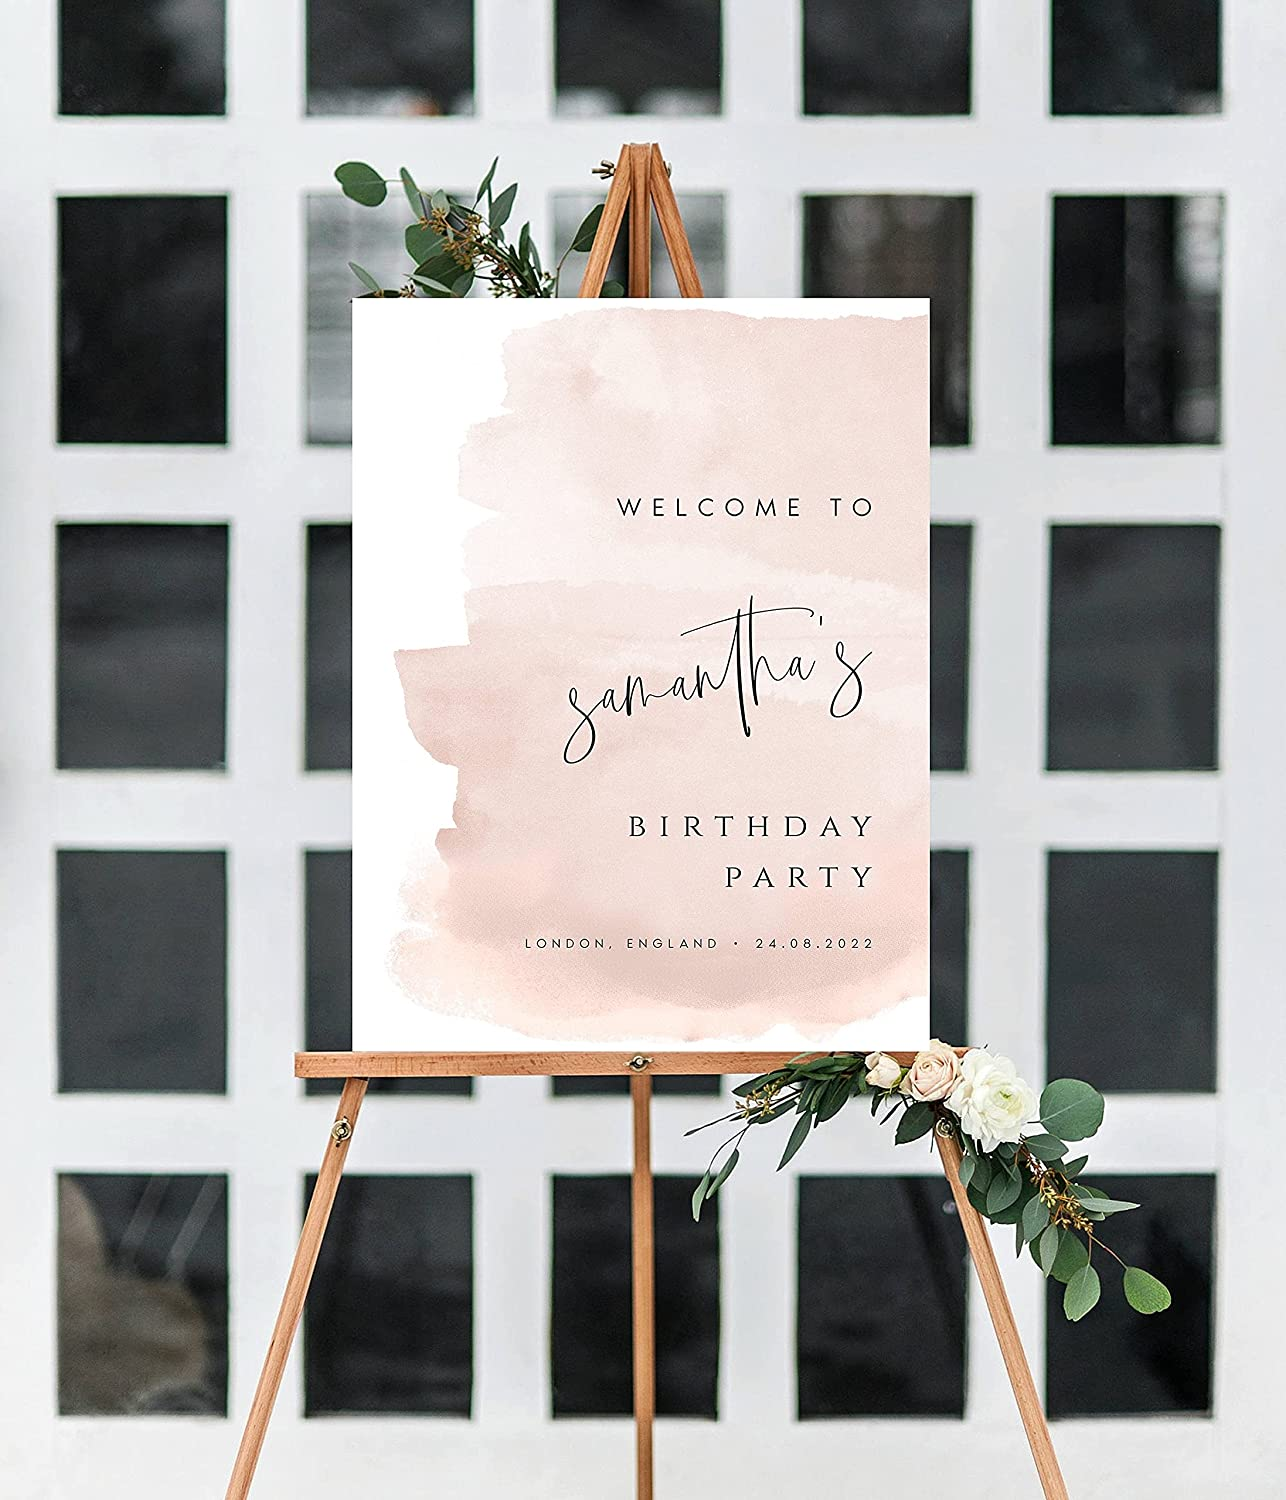 DKISEE Blush Pink Birthday Welcome Ultra-Cheap Deals Sign Template Popular popular Birt Printable